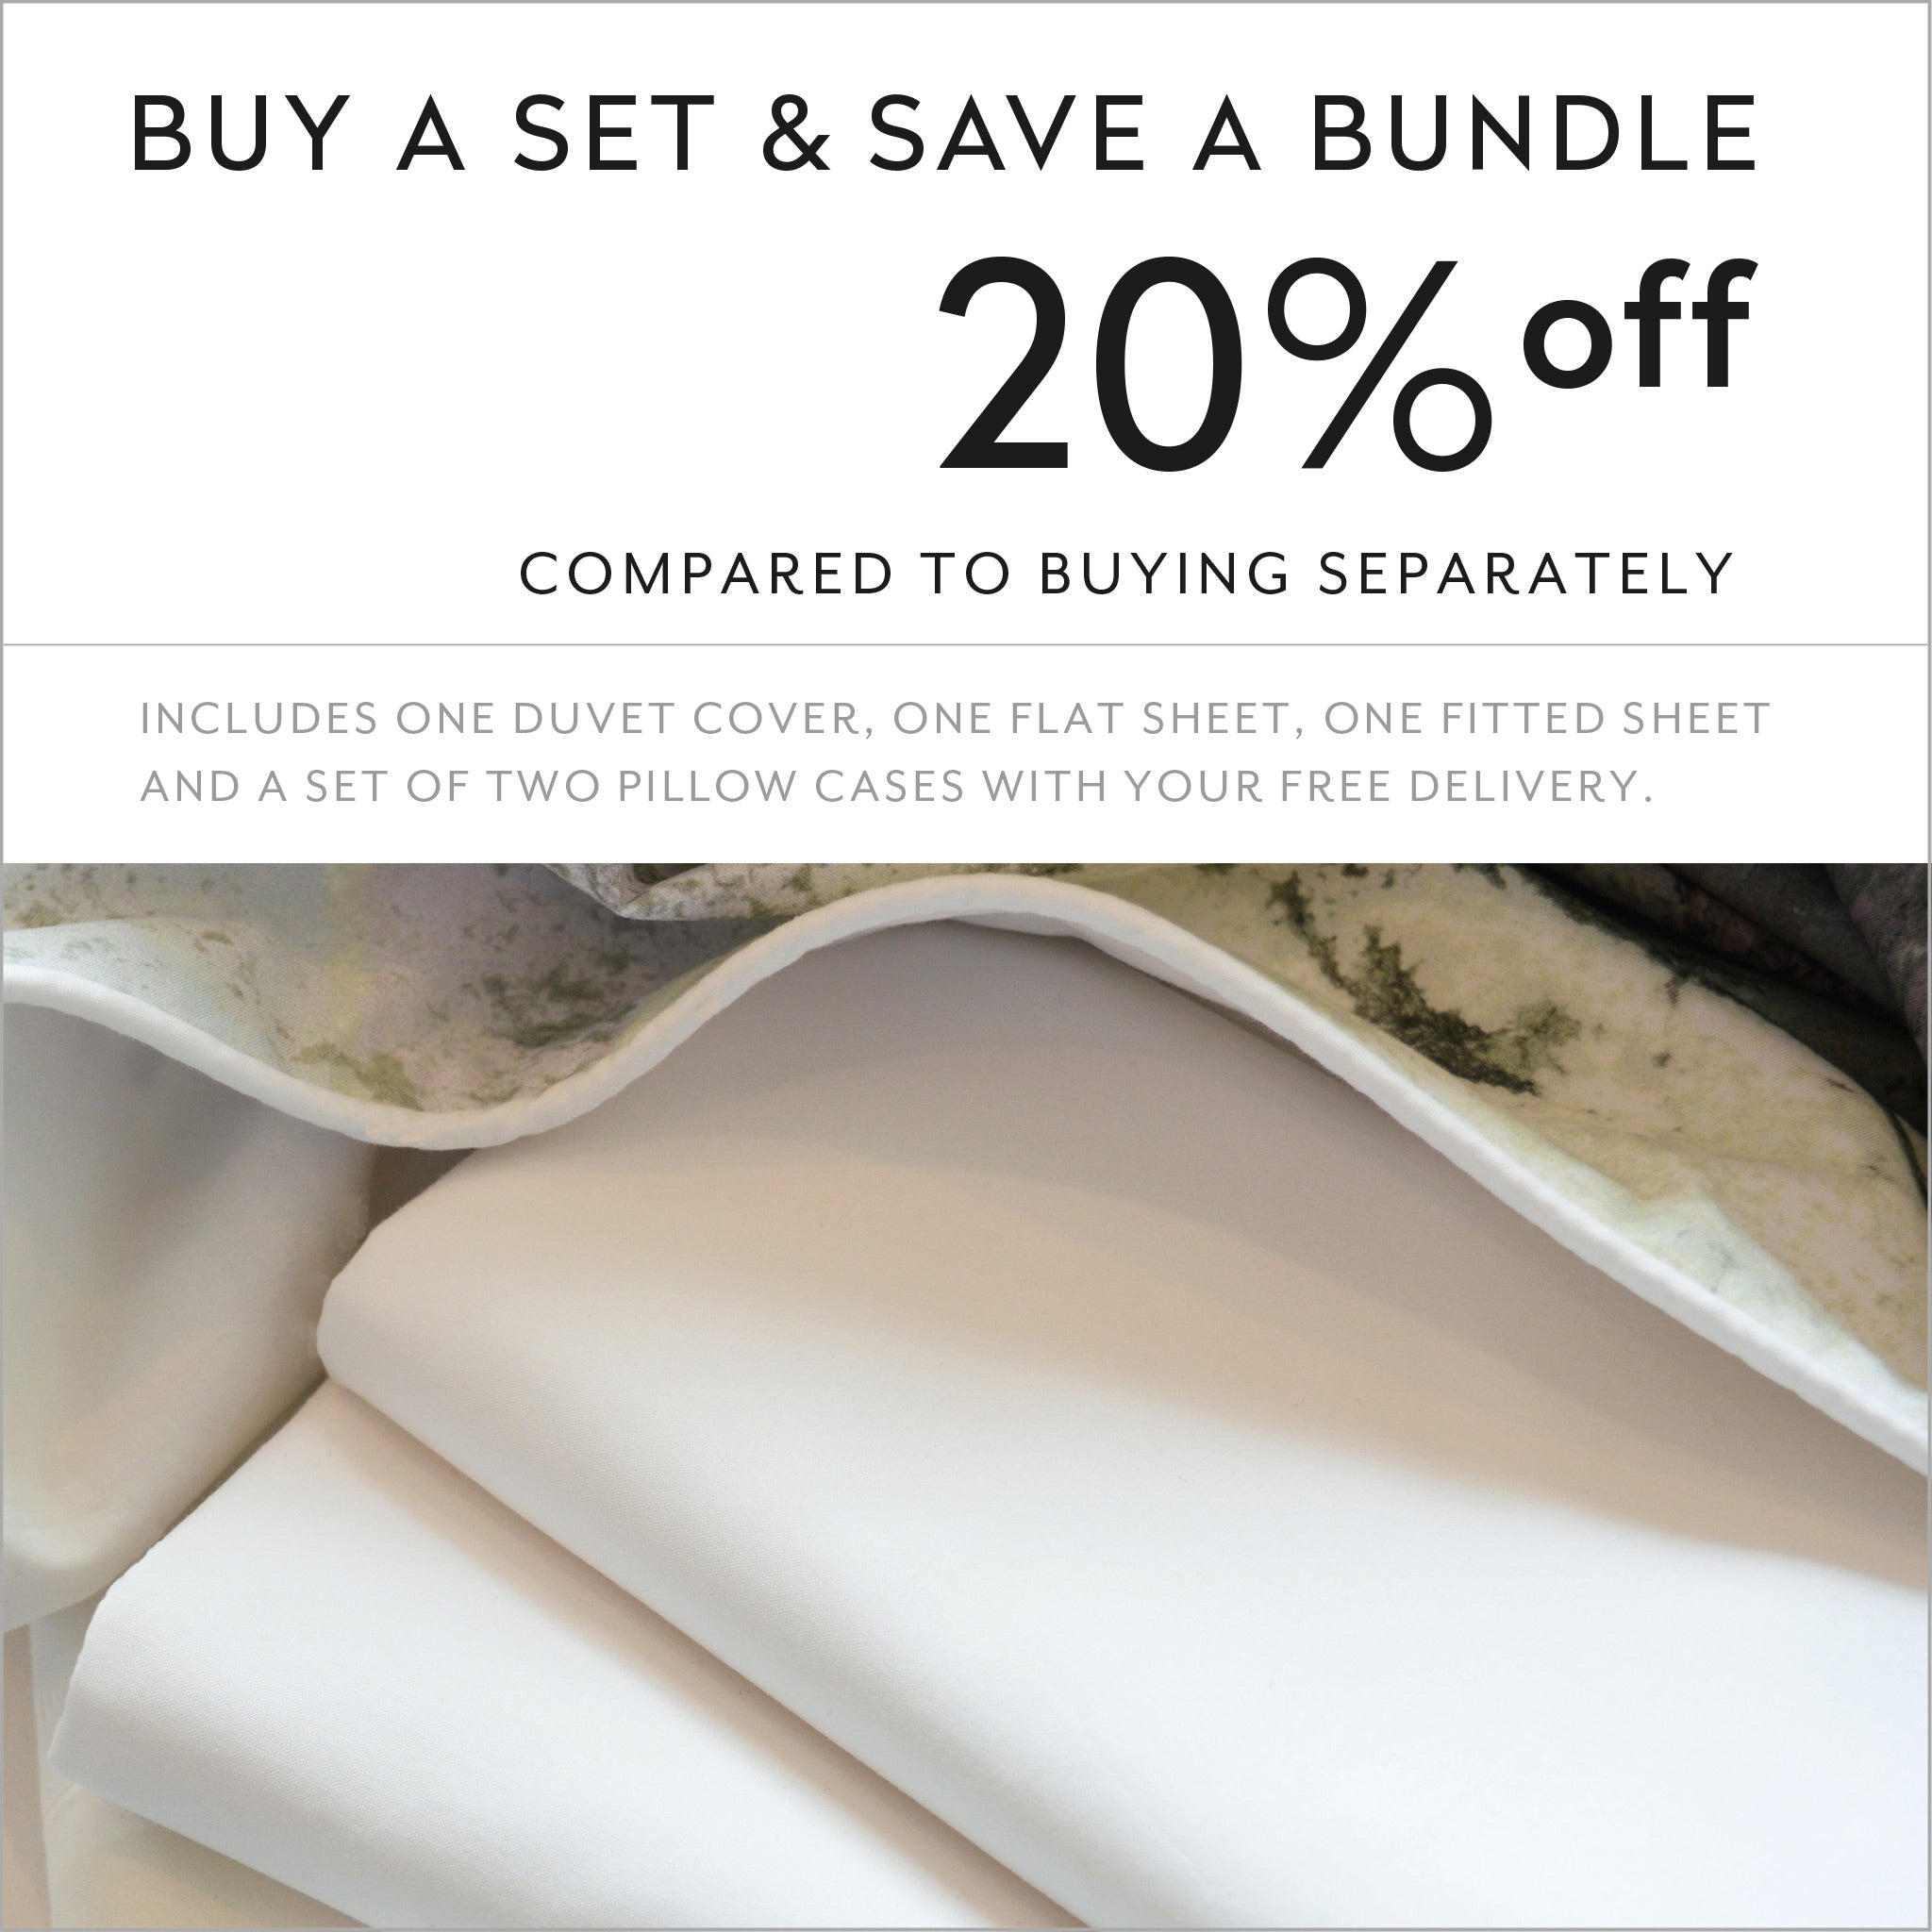 ZayZay-luxury-linen-sets-save-a-bundle-Rose-Cement-Mix